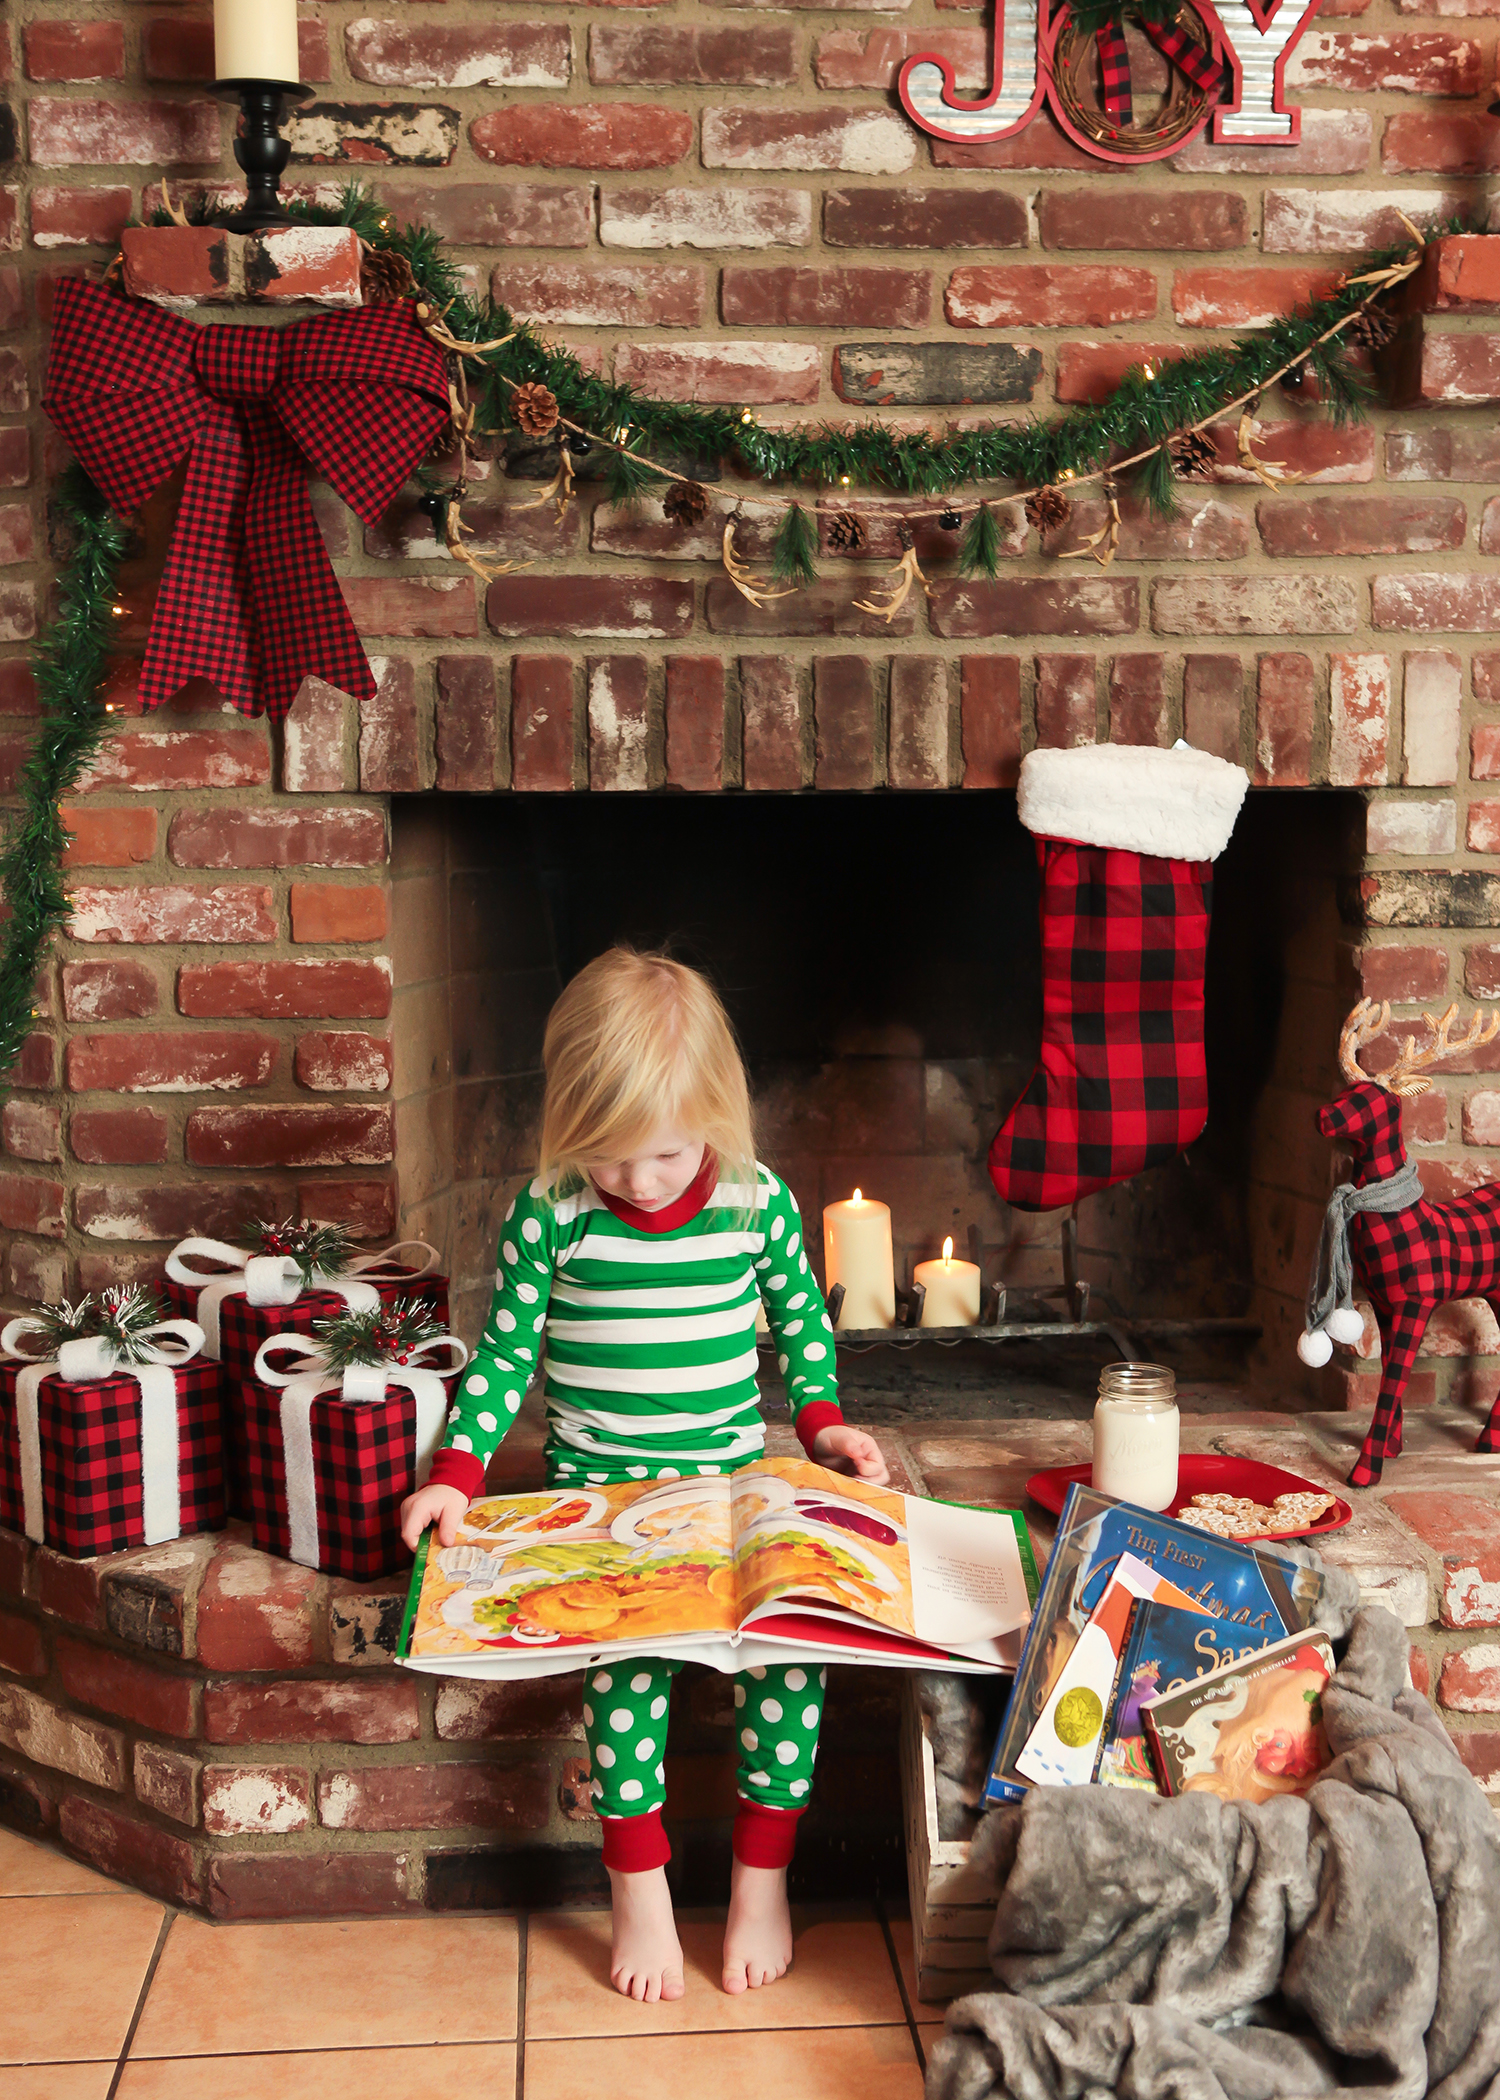 Staying home for the holidays?  This bright Christmas Fireplace is the perfect spot for reading Christmas stories and waiting for Santa.........